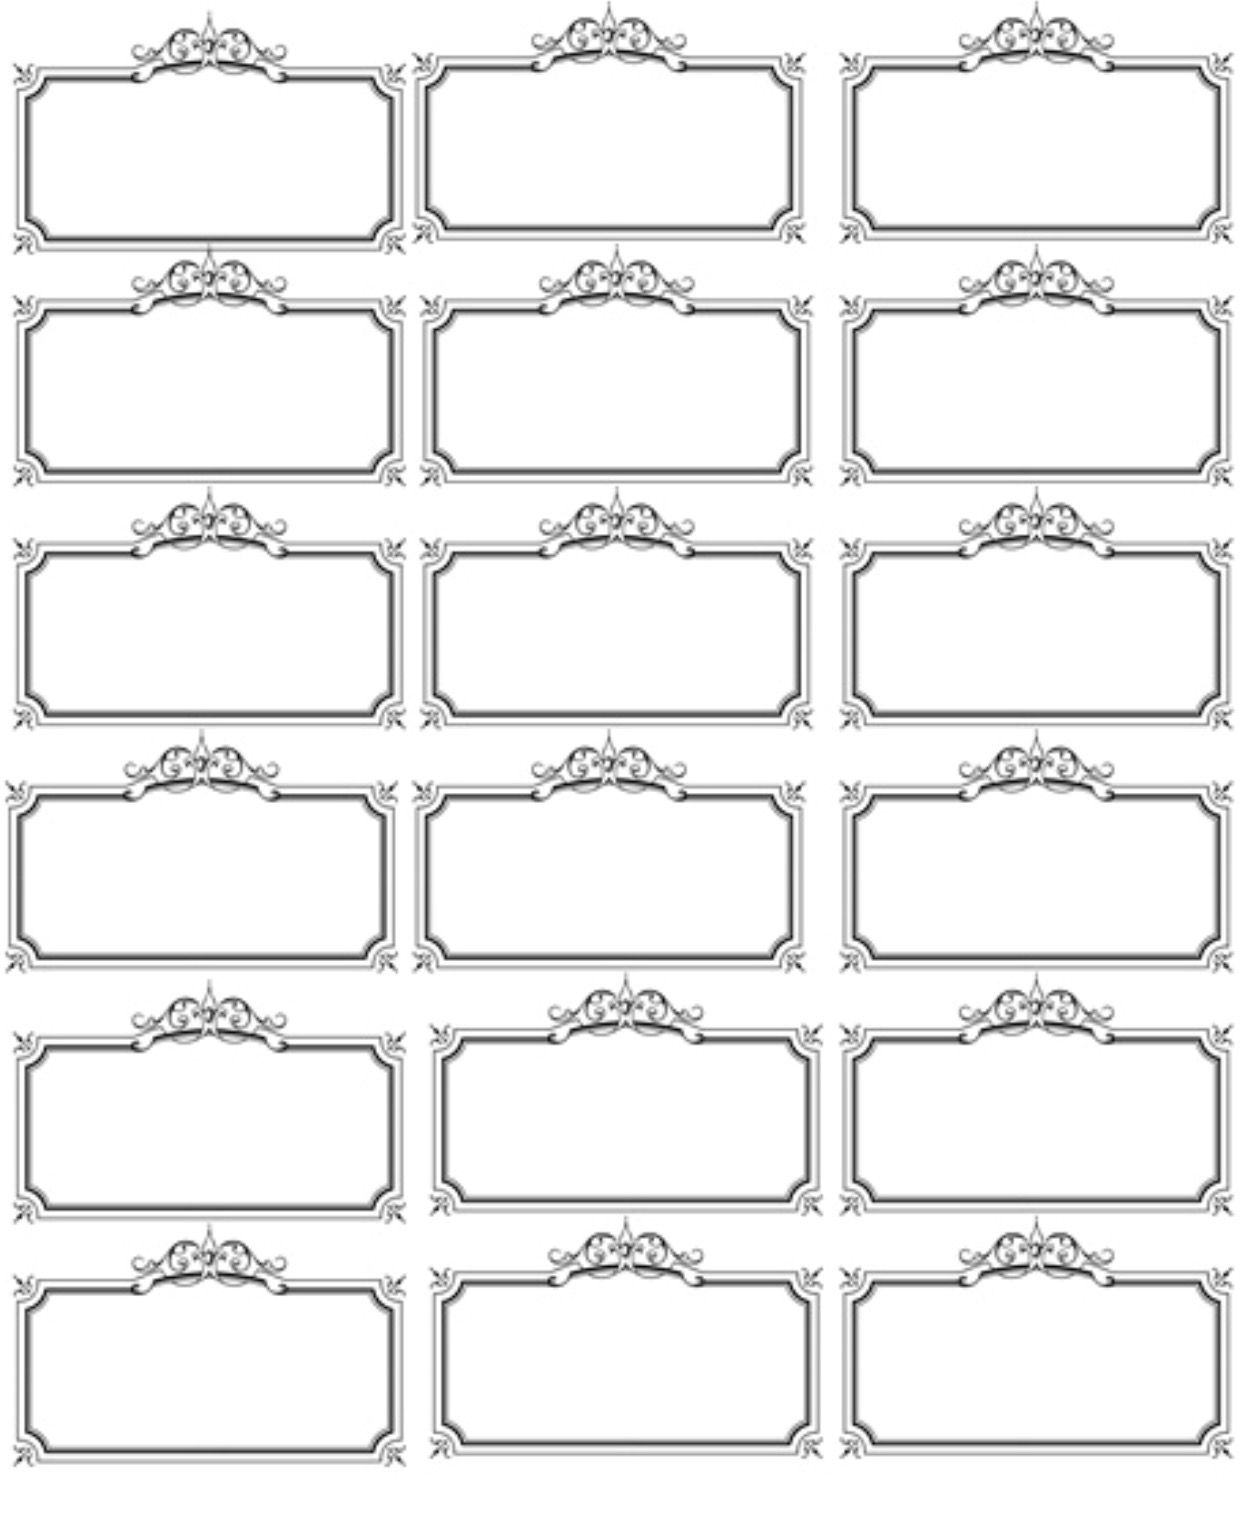 This is a photo of Massif Printable Name Tags Templates